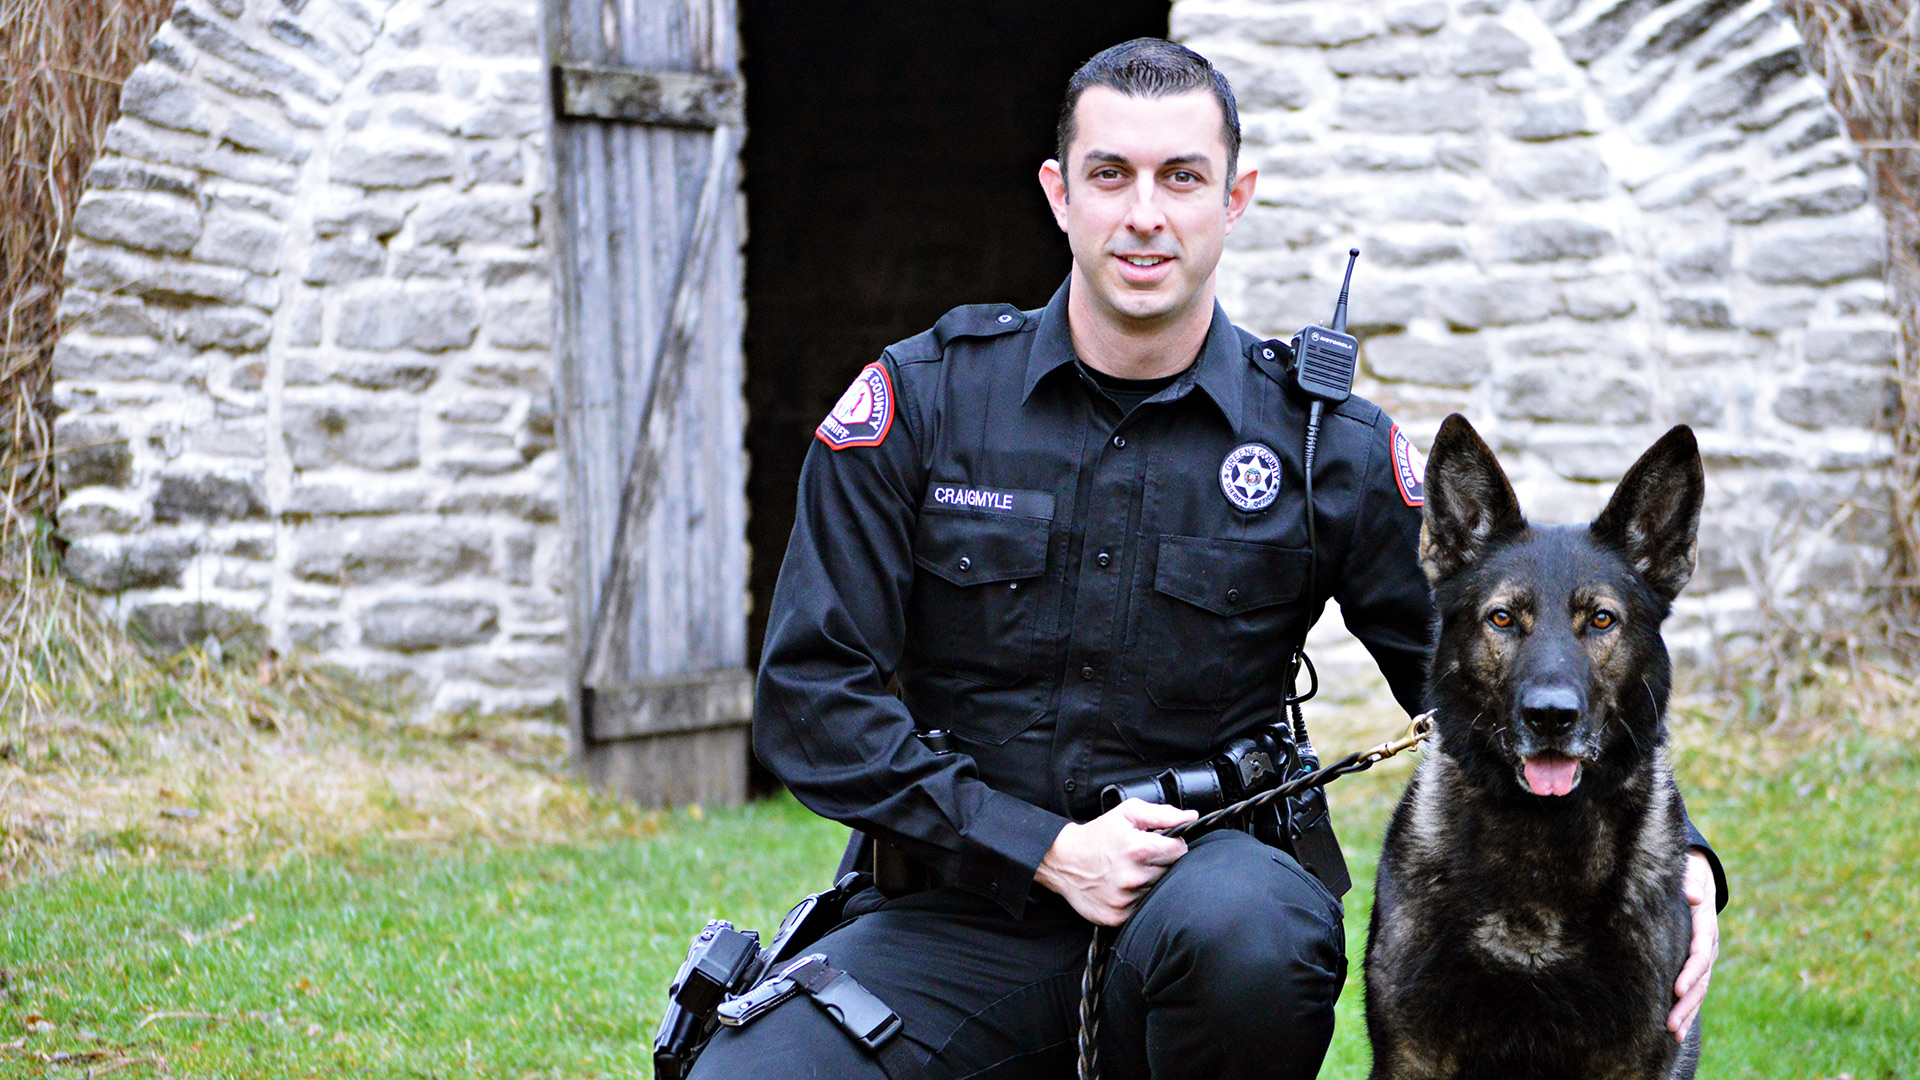 'Live PD' Dream Team: Cpl James Craigmyle and K-9 Lor